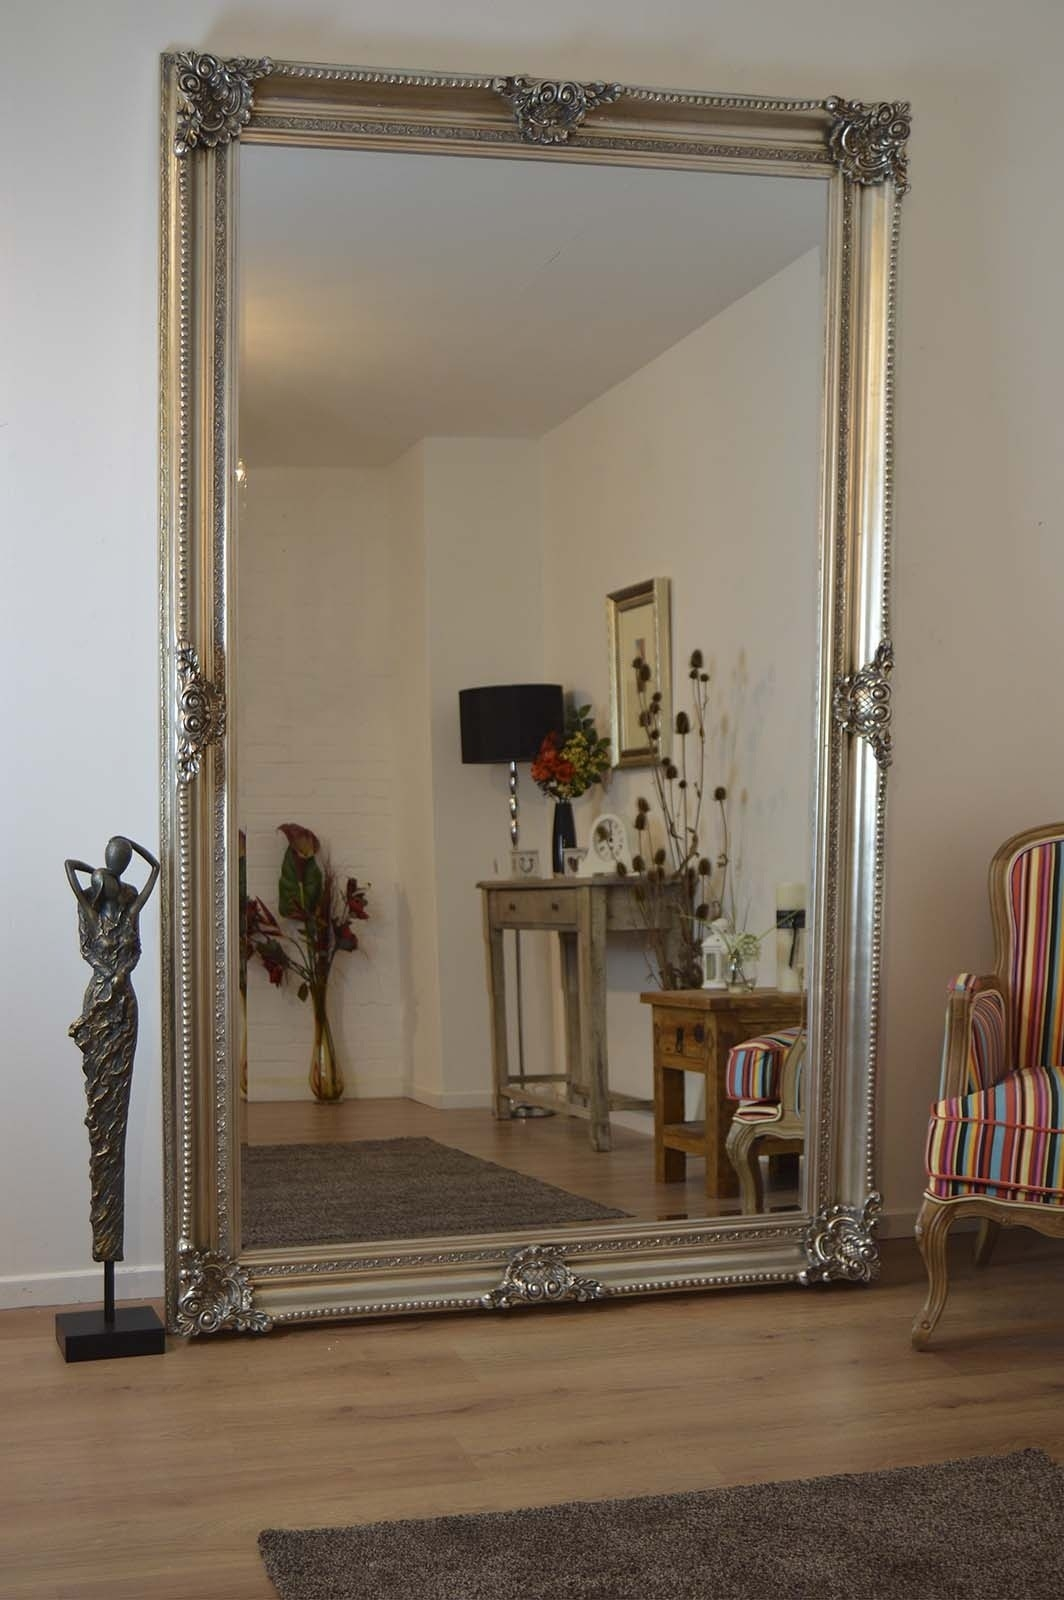 Classic Impression On Antique Wall Mirrors Vwho With Antique Large Mirrors (Image 9 of 15)